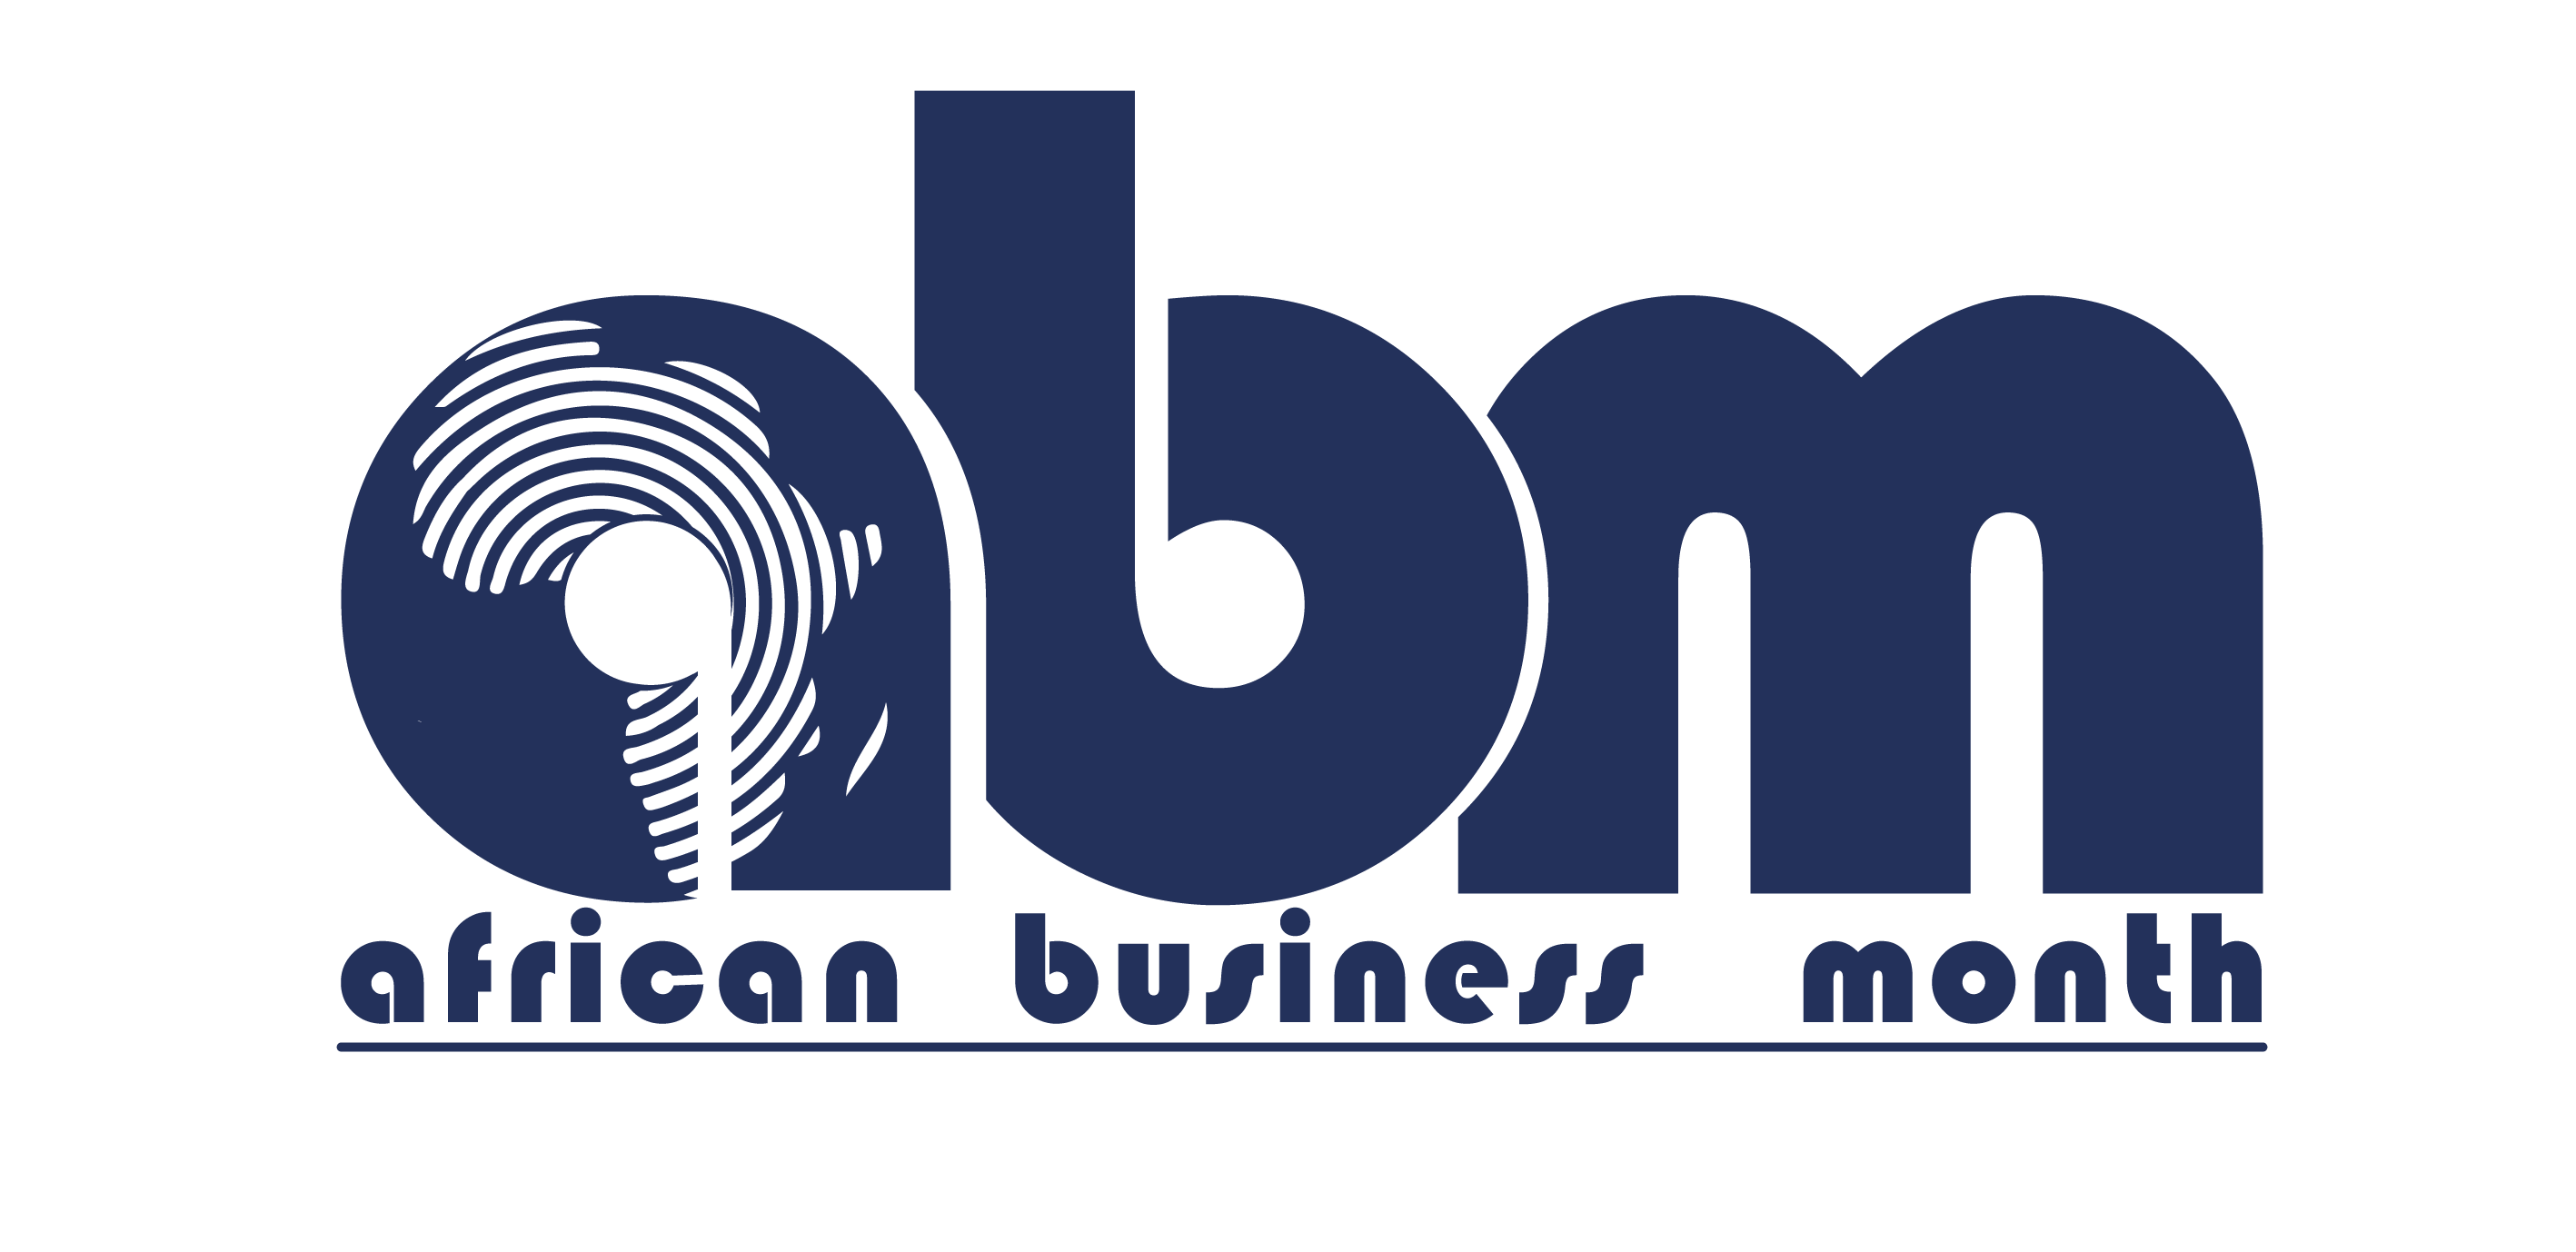 African Business Month